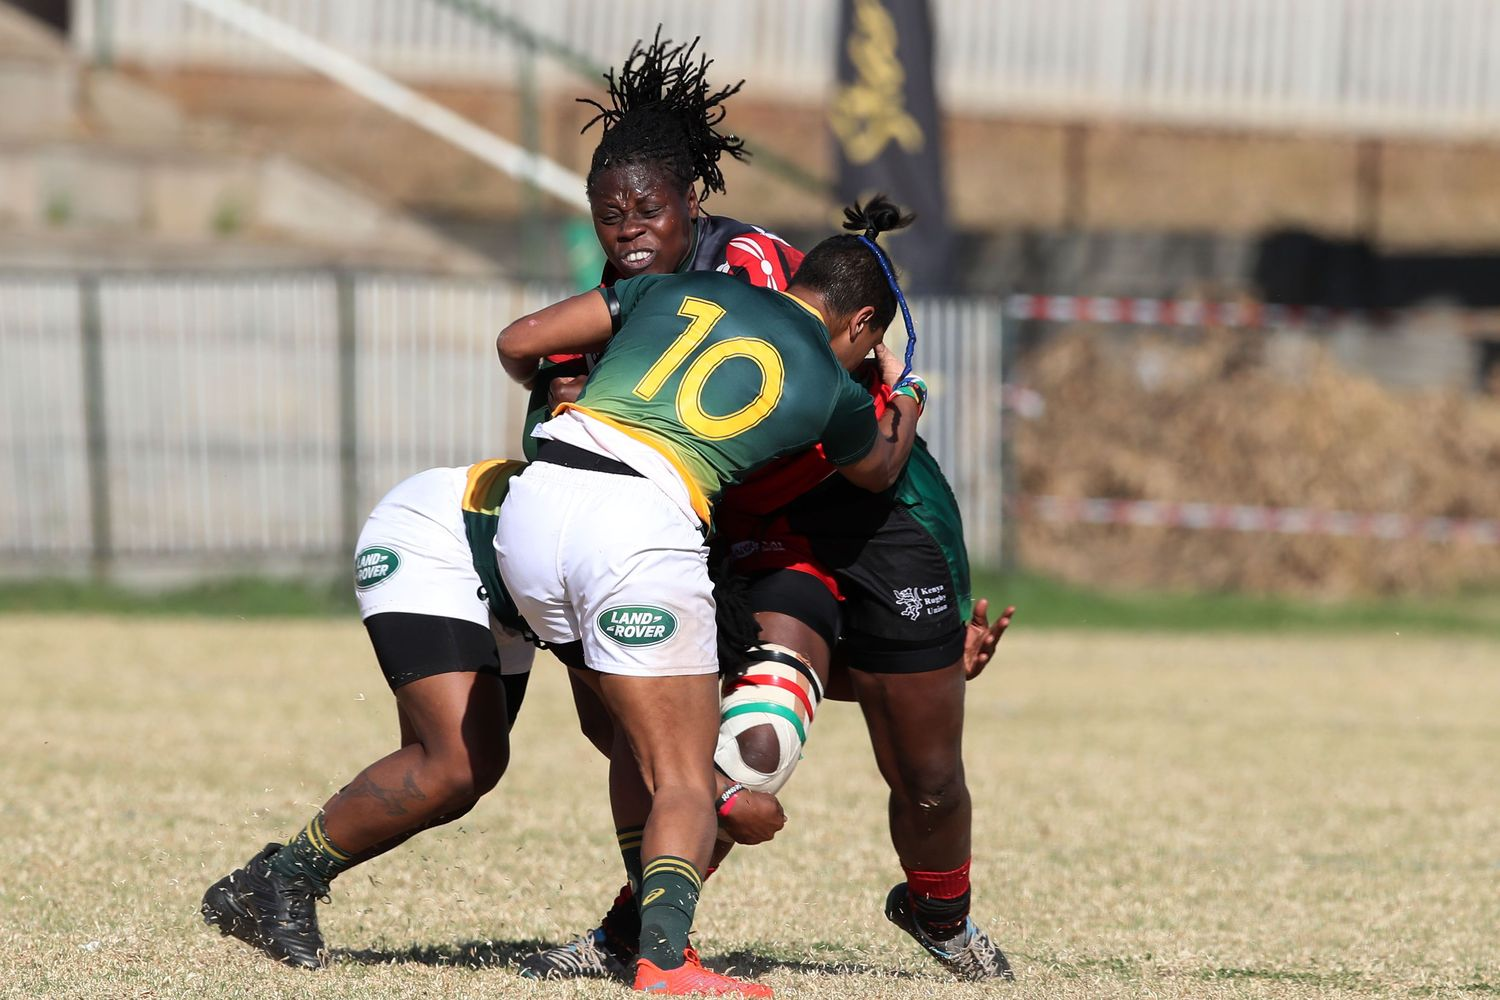 Rugby - 2019 Rugby Africa Womens Cup - South Africa v Kenya - Bosman Stadium - Brakpan - South Africa